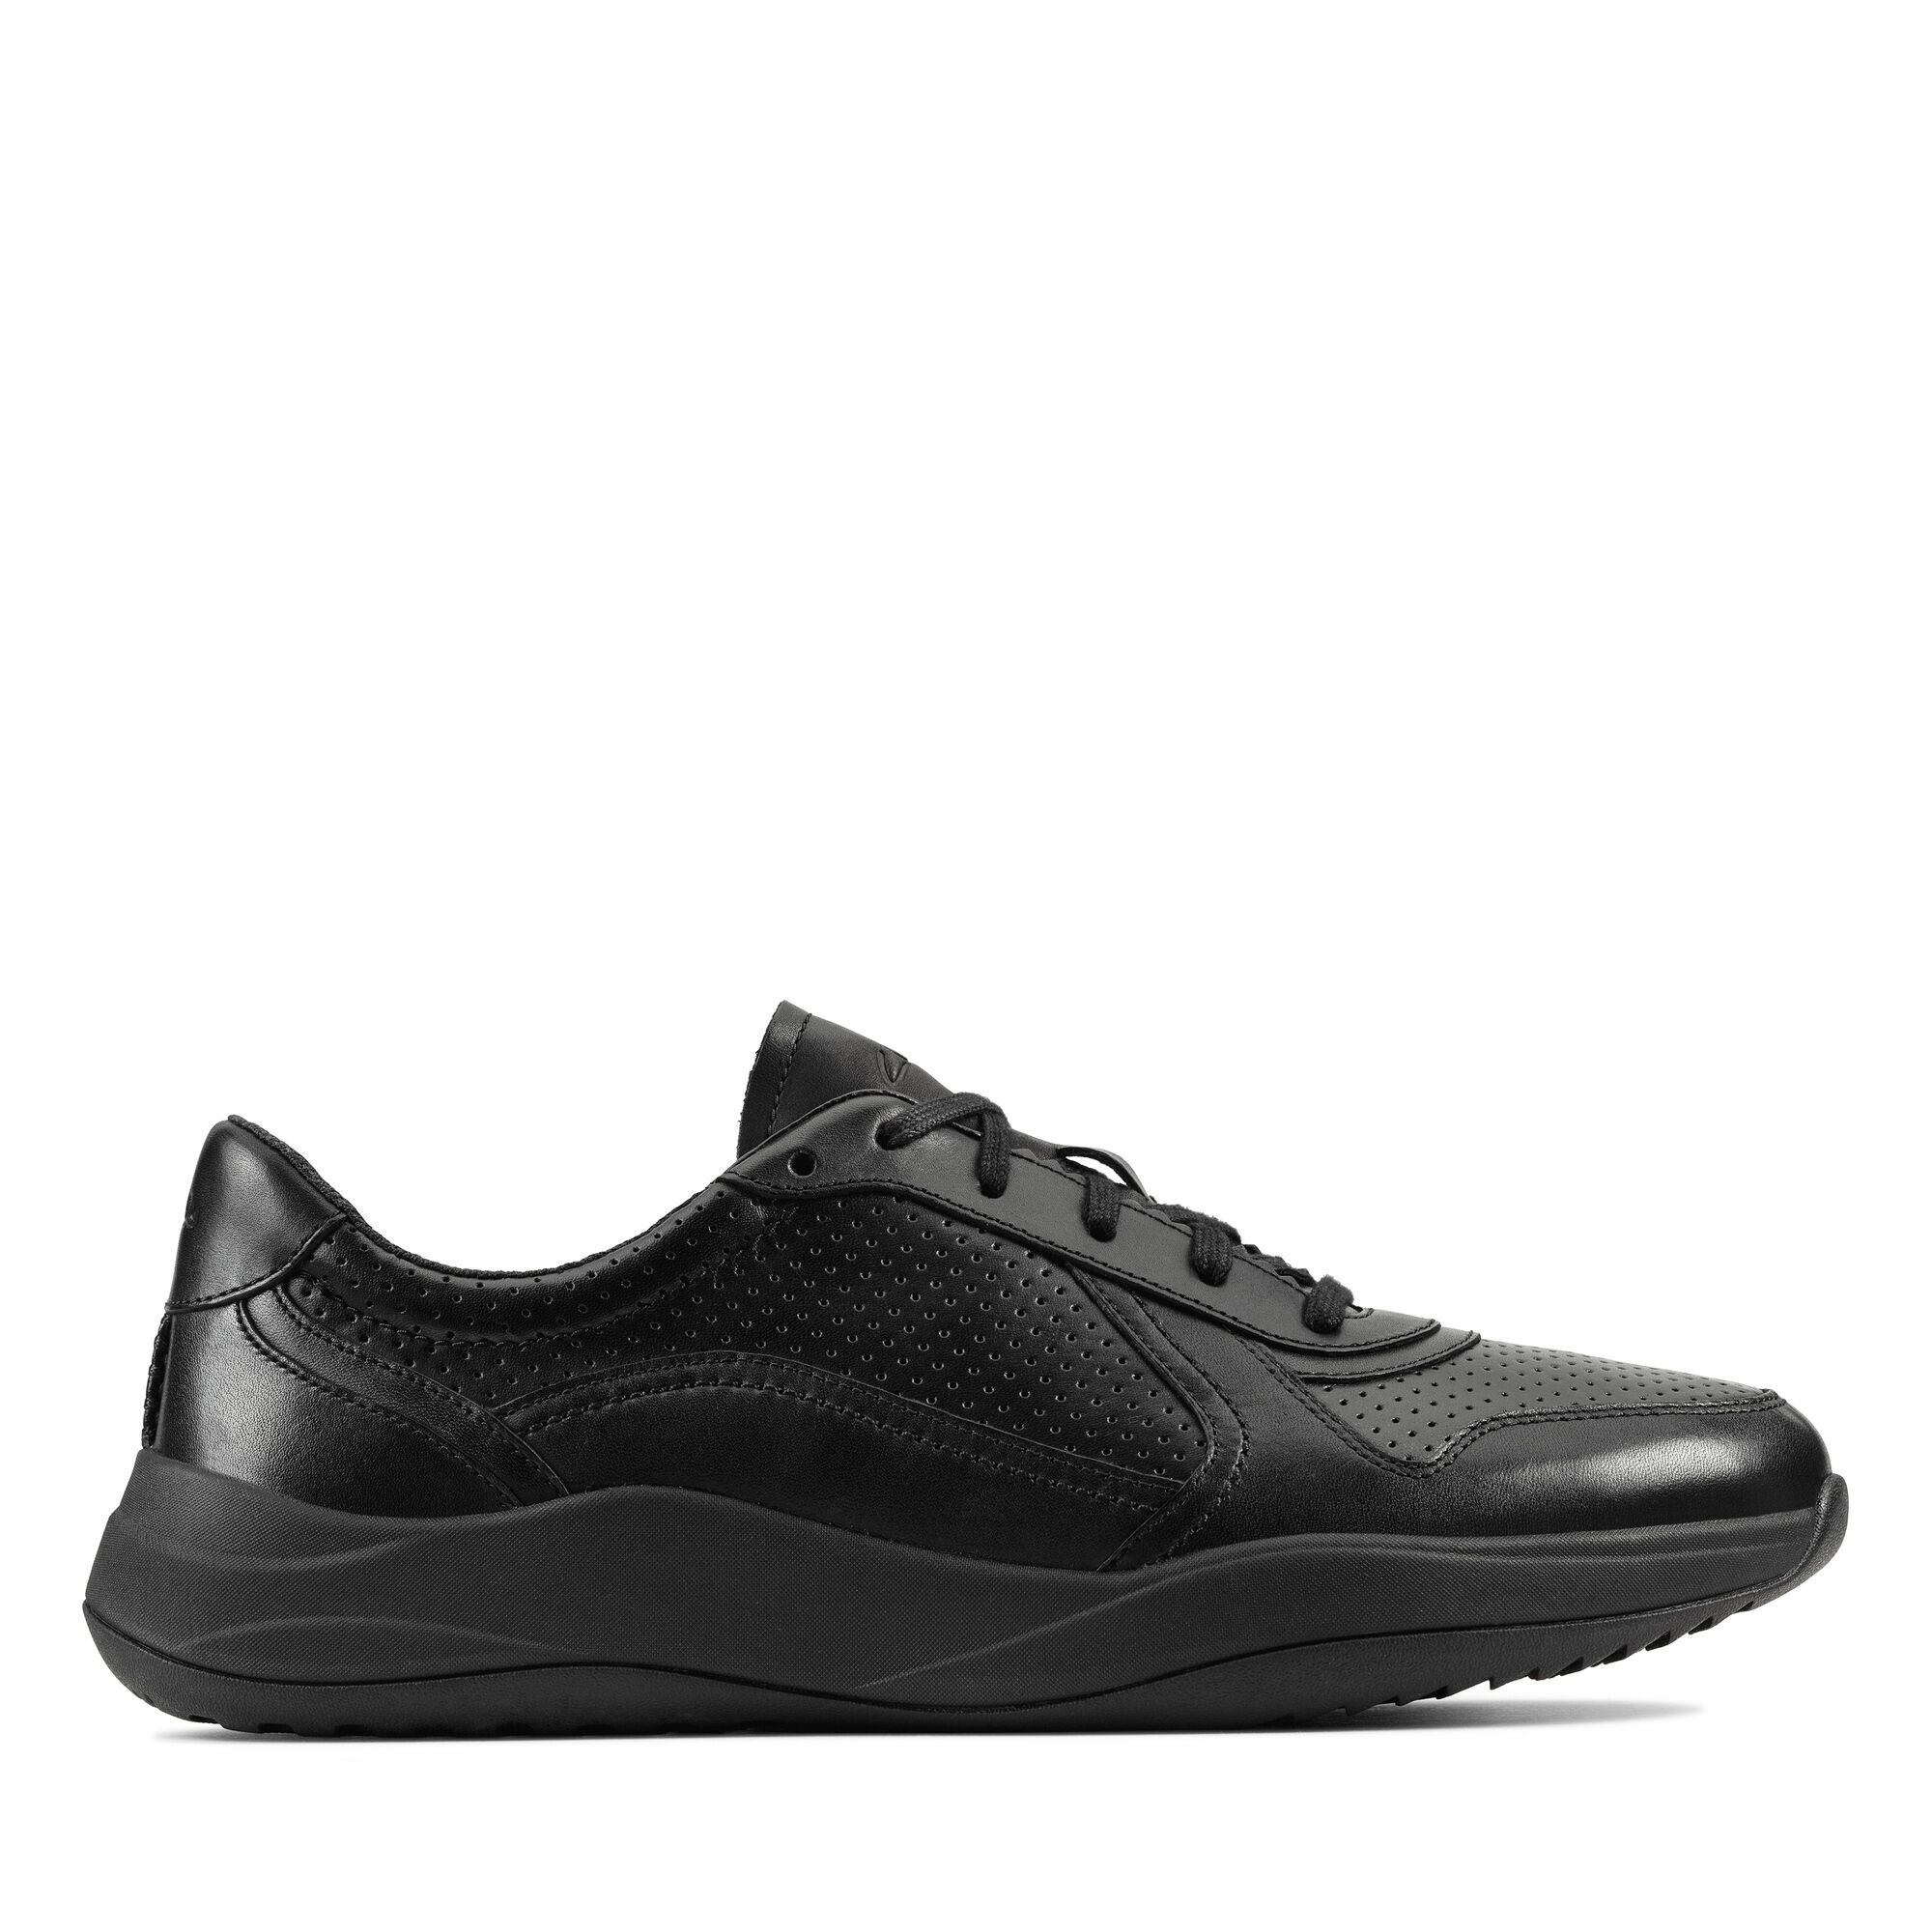 Leather Sneakers - Sift Speed   Clarks